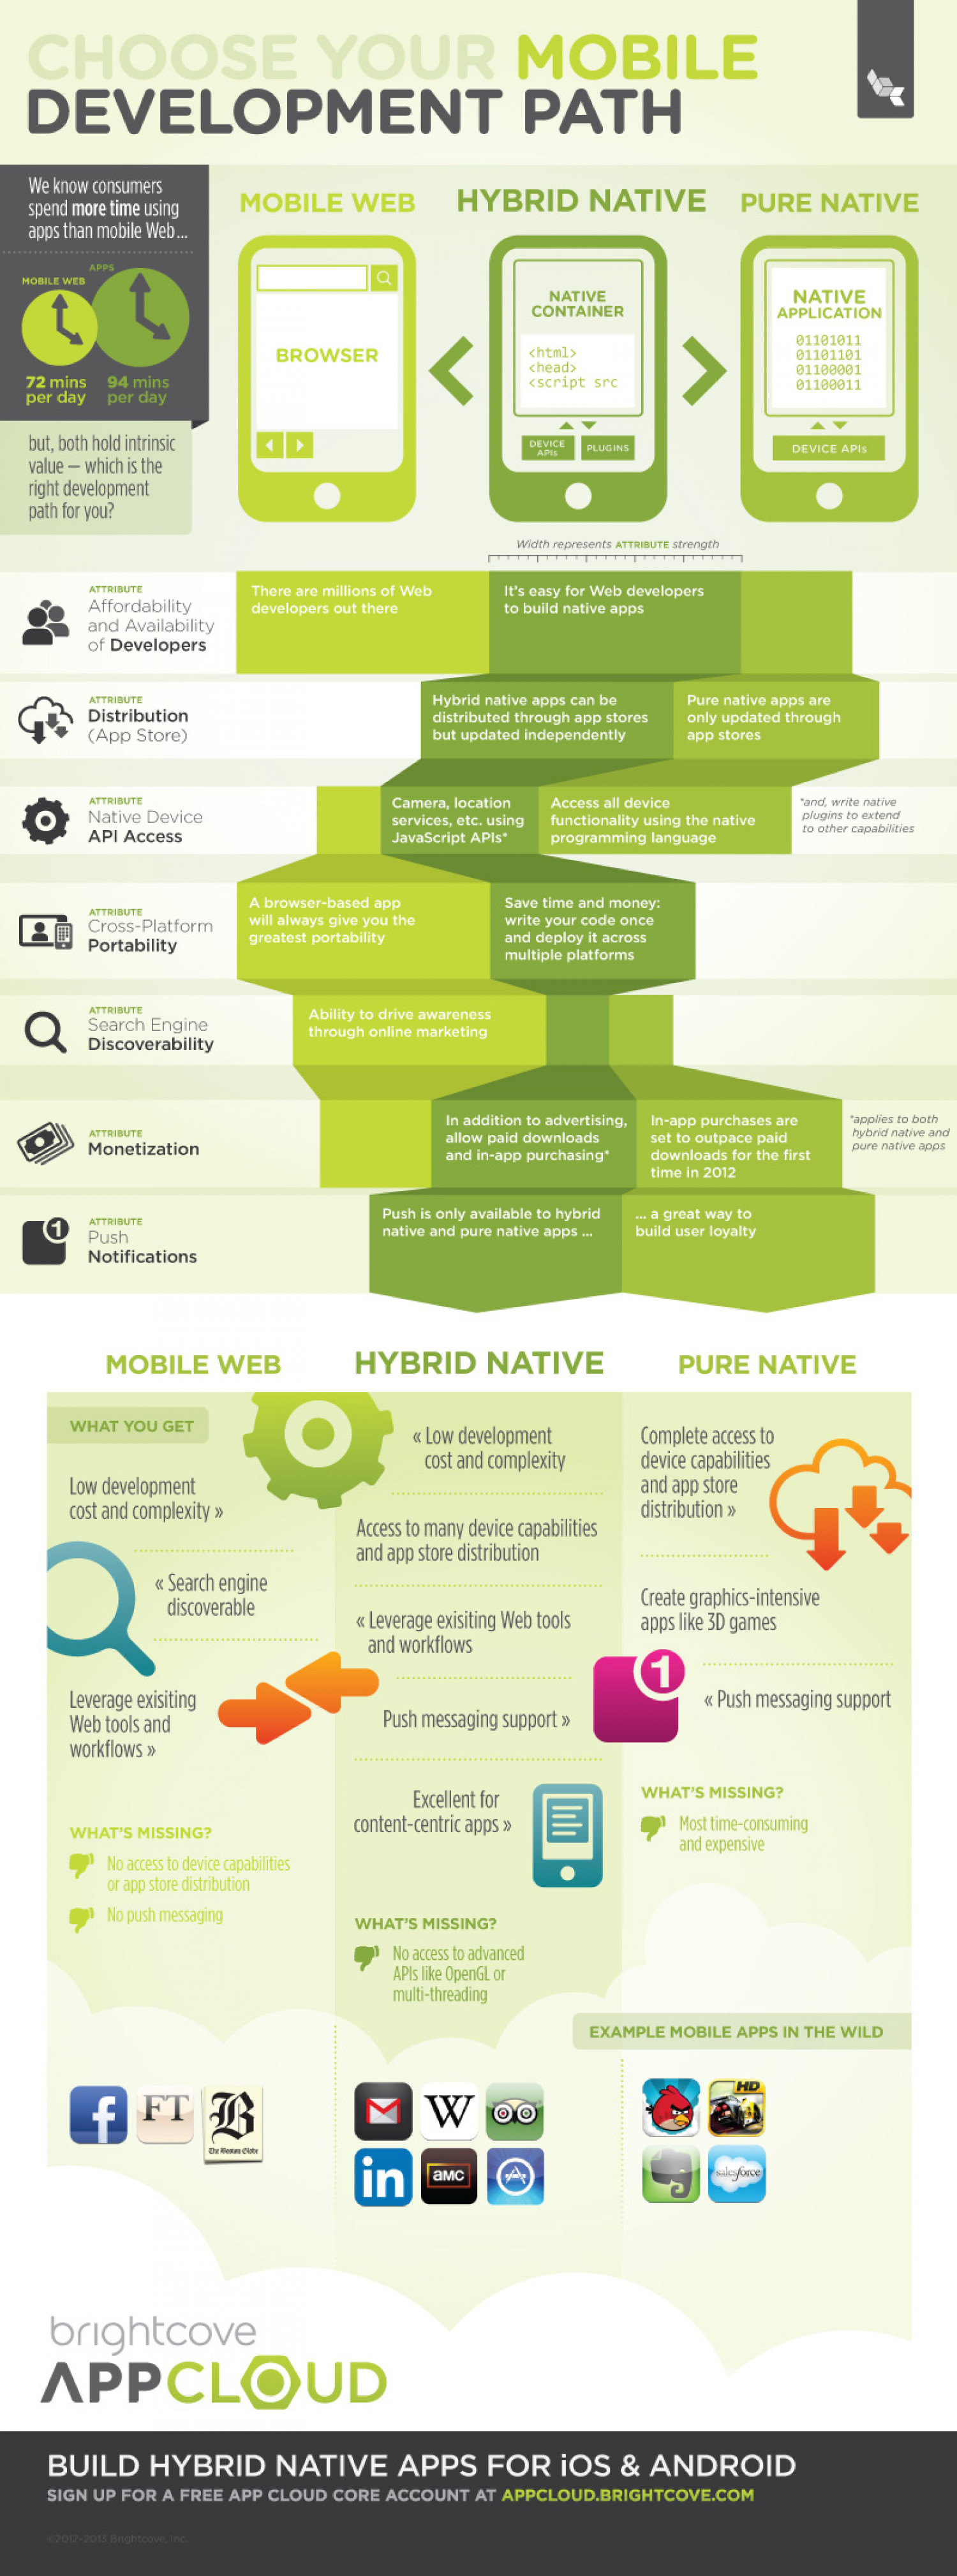 Choose Your Mobile Development Path Infographic